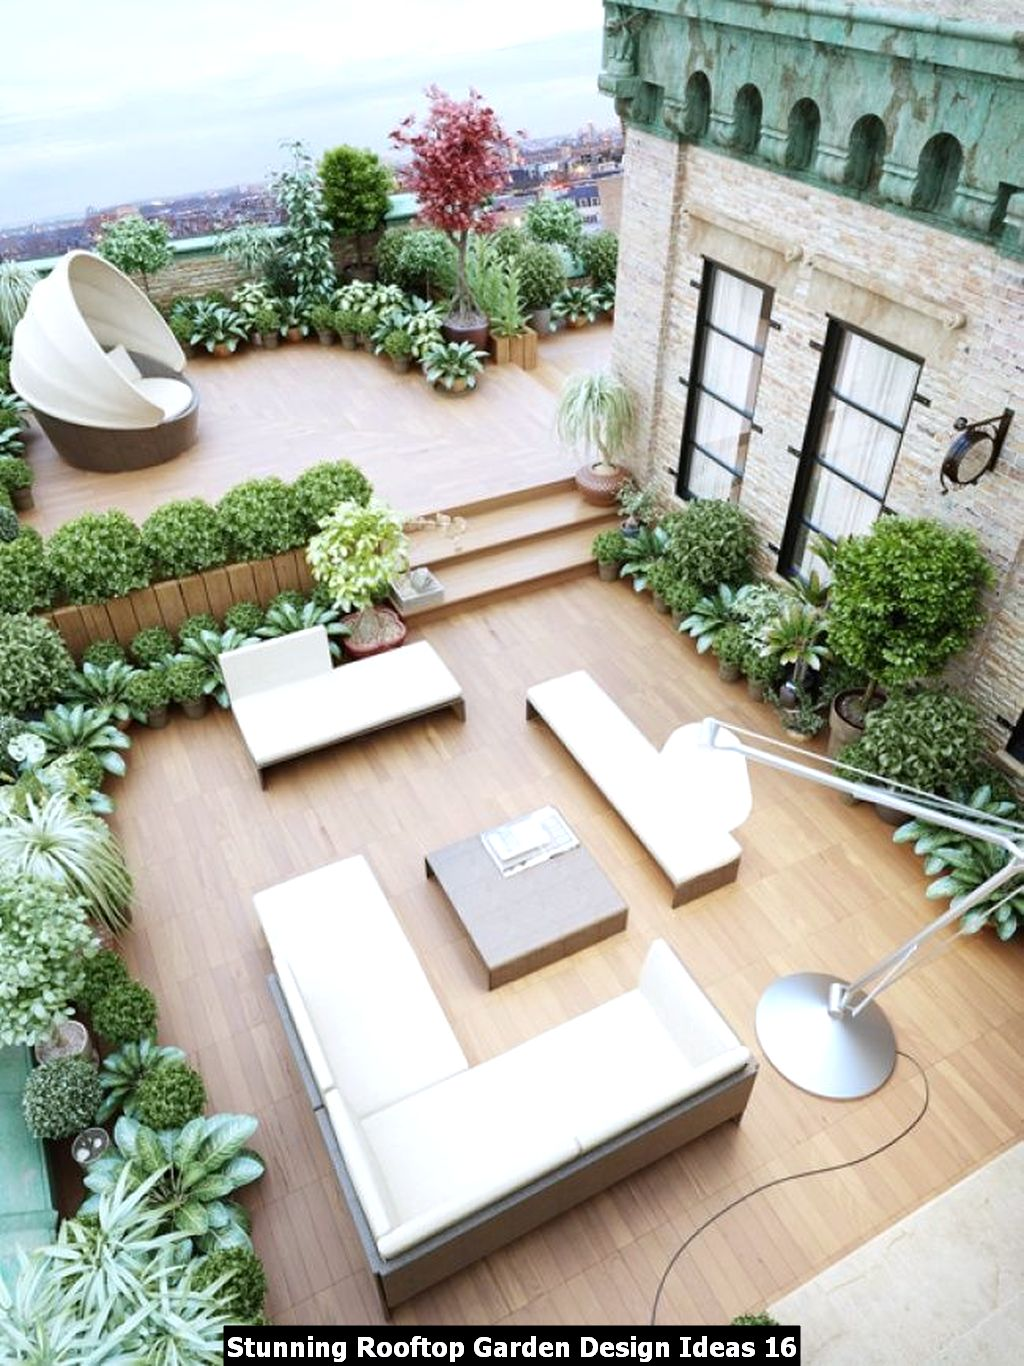 Stunning Rooftop Garden Design Ideas 16